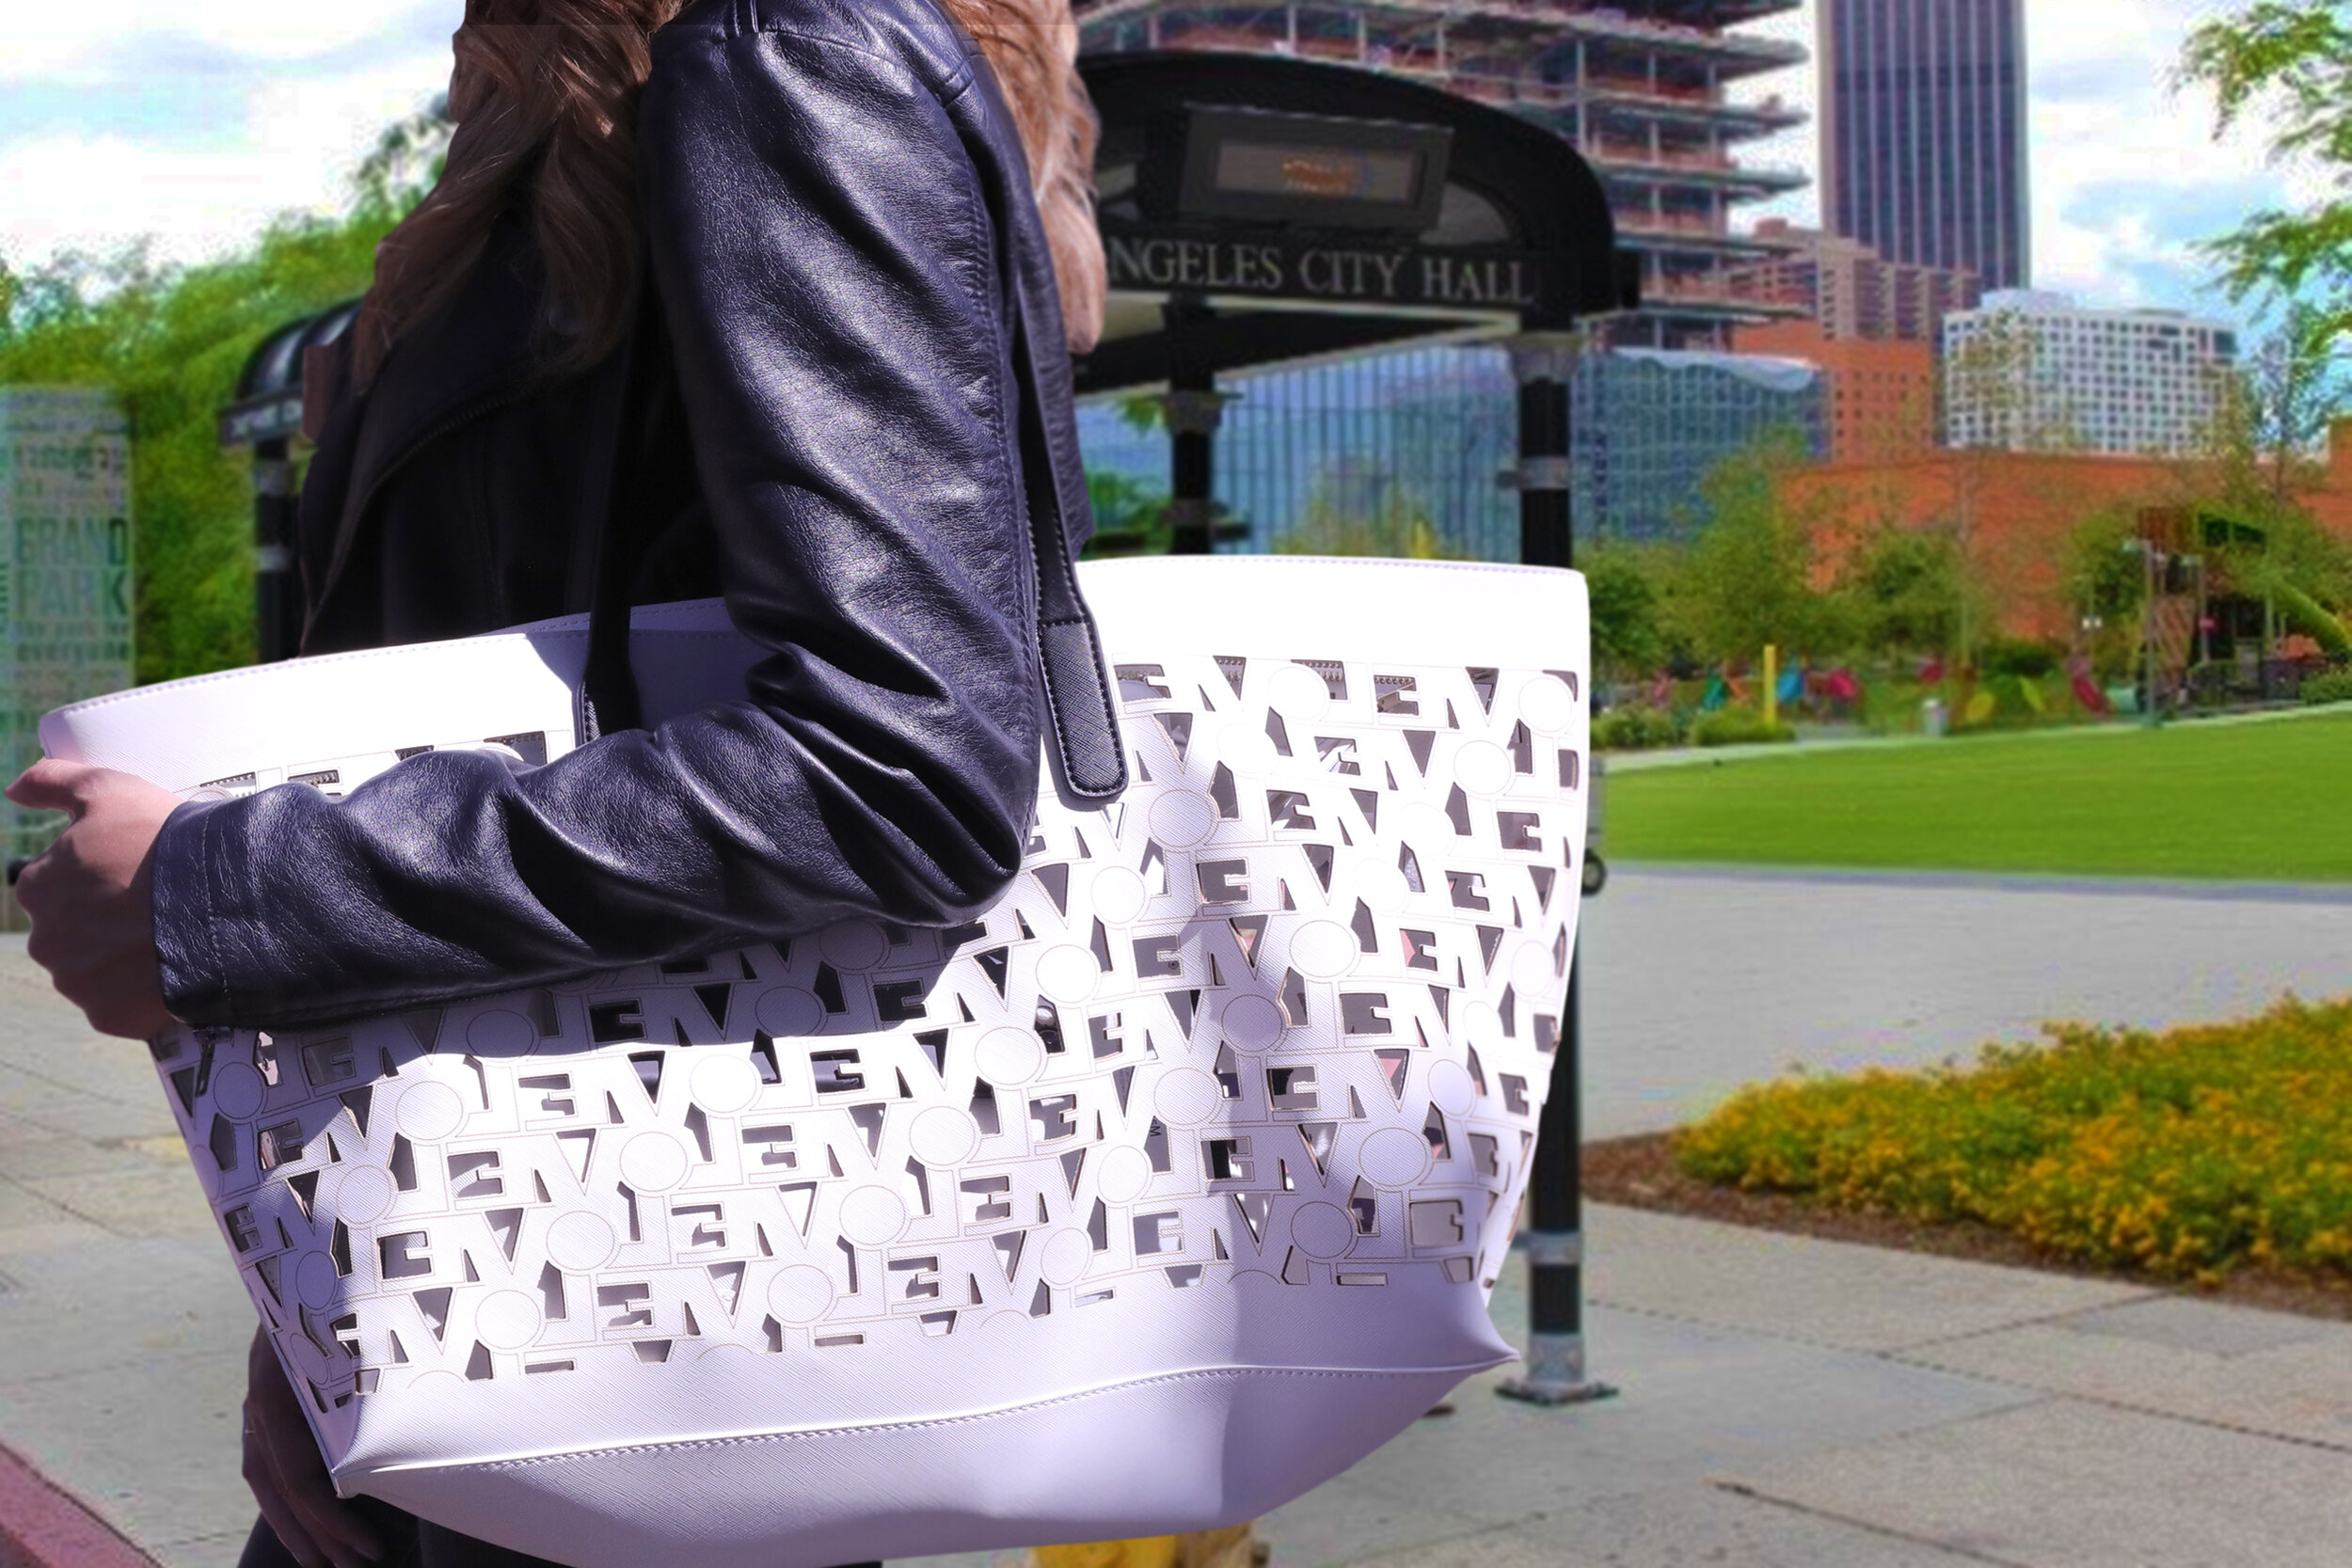 White Tote (Arm on Bag, Bus Stop Background).jpg